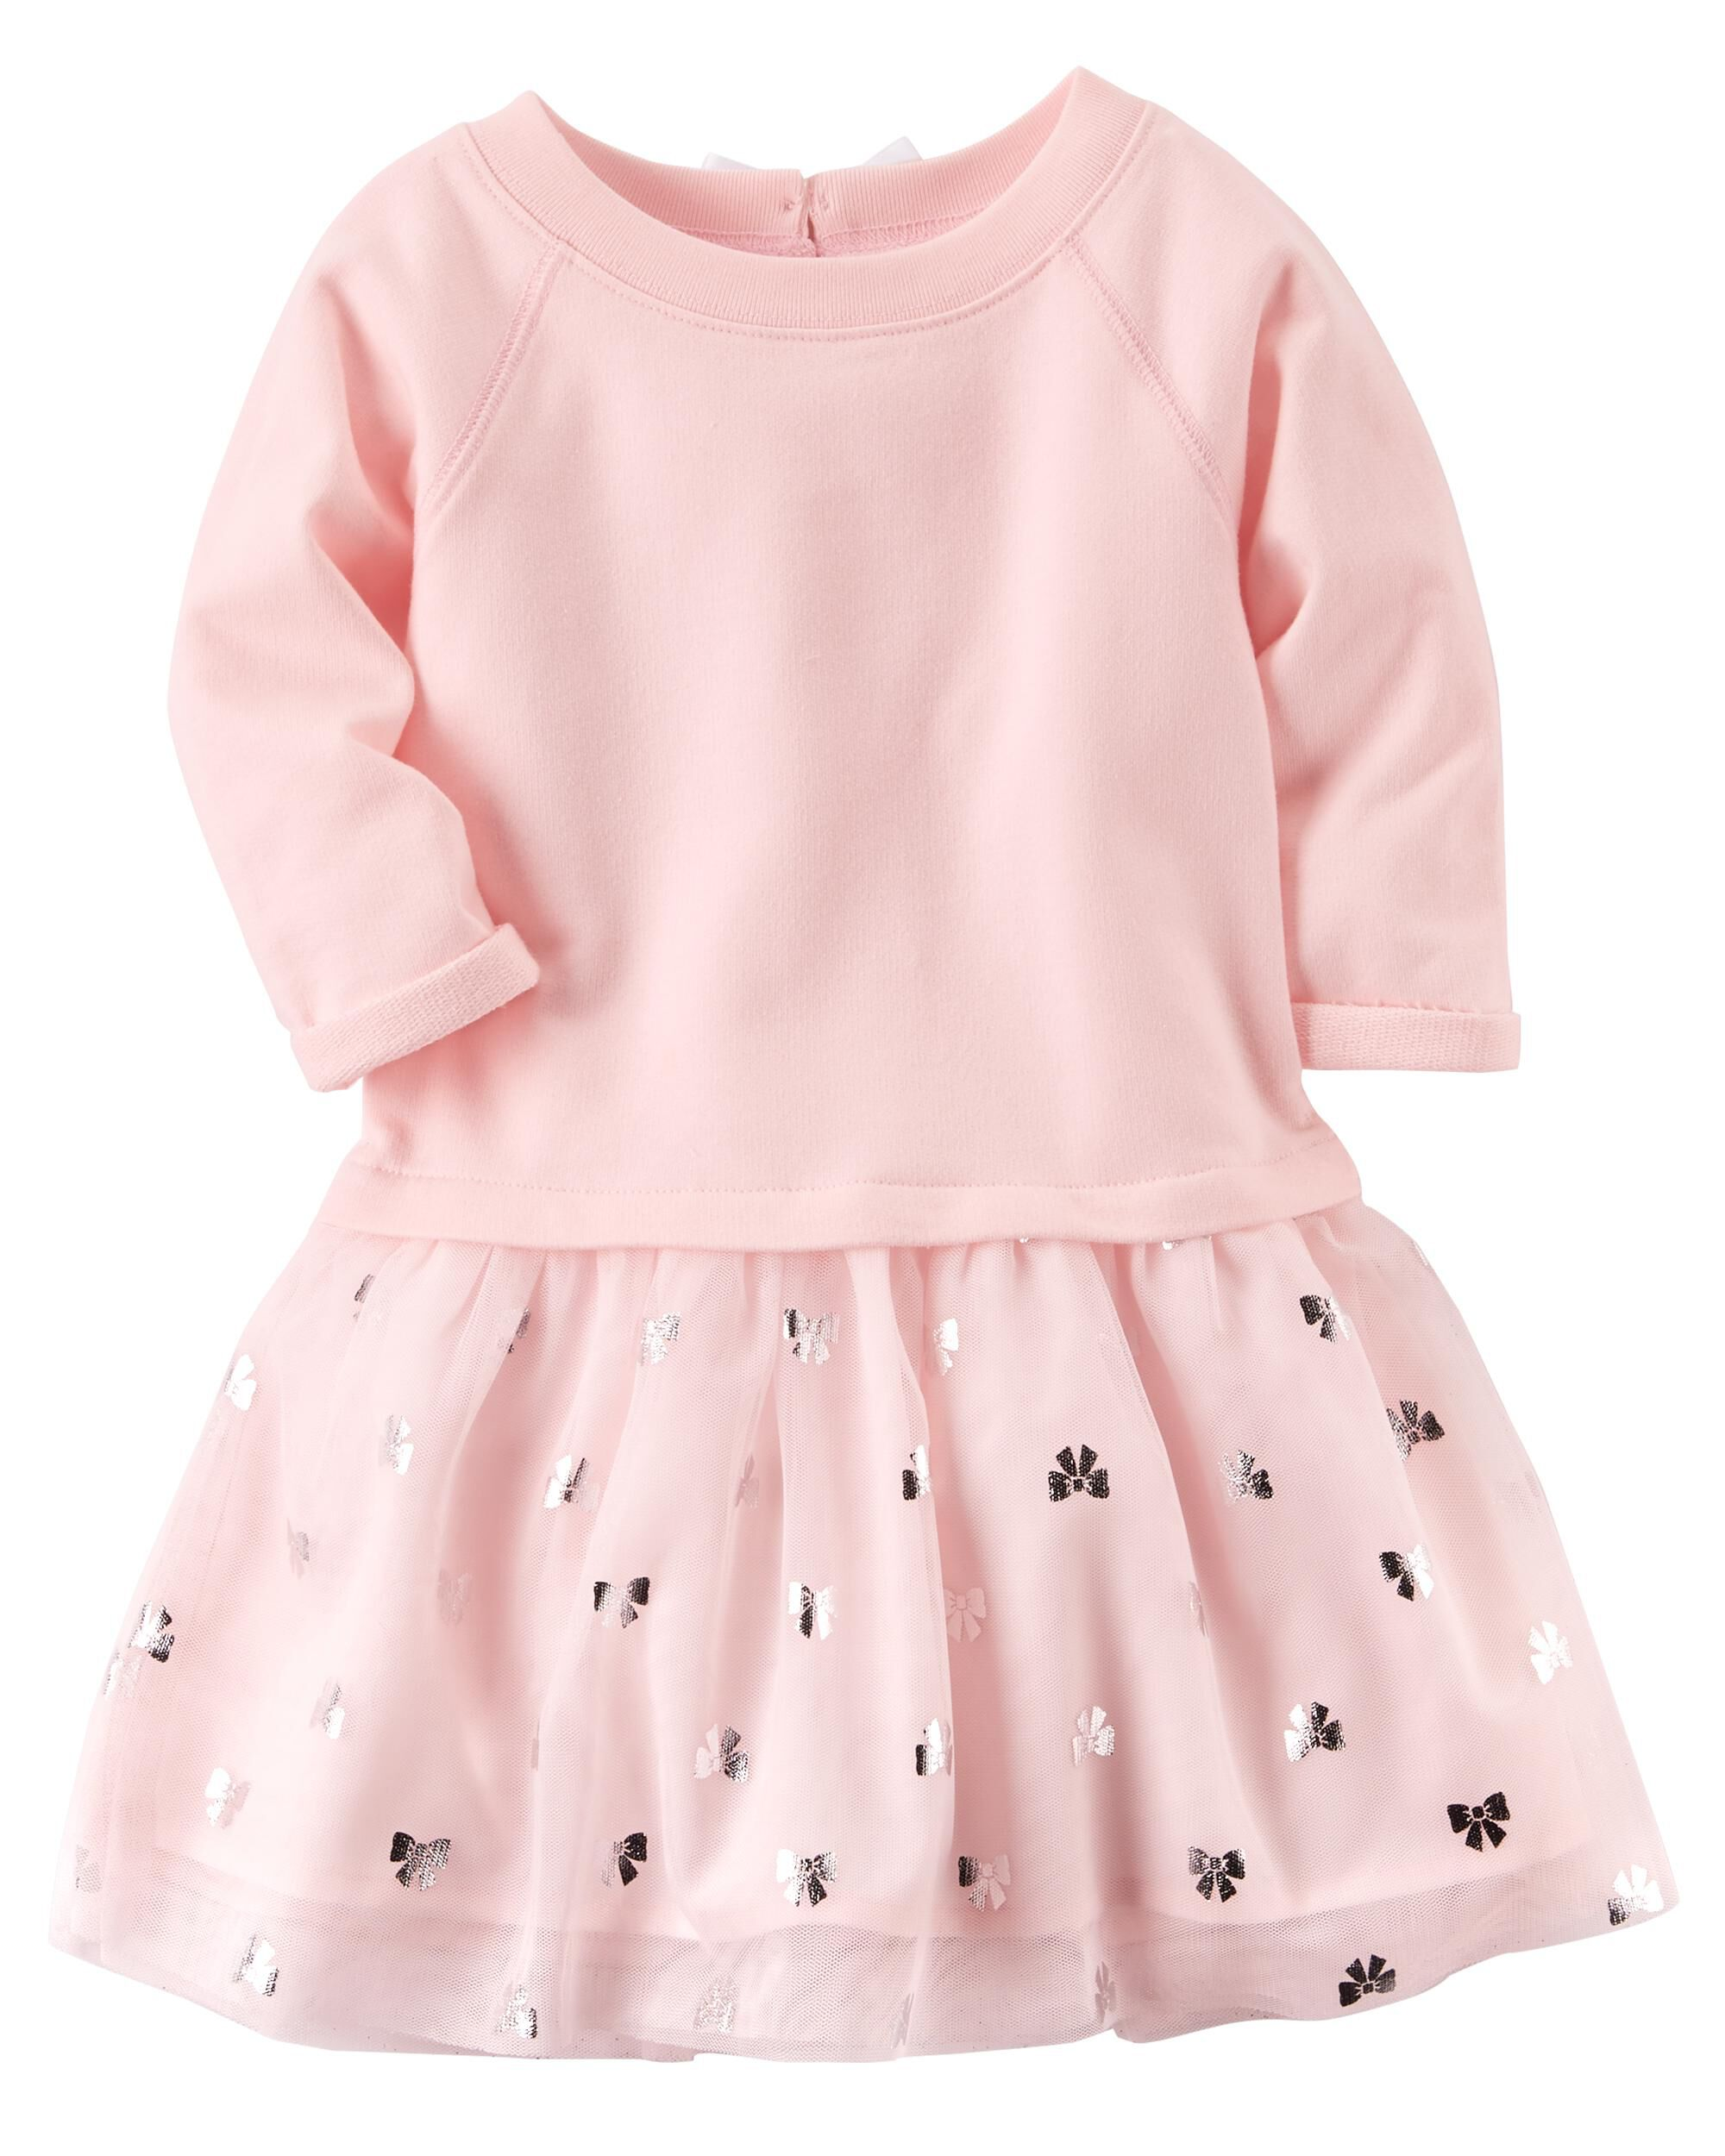 Carters Baby Girl Dress Shoes